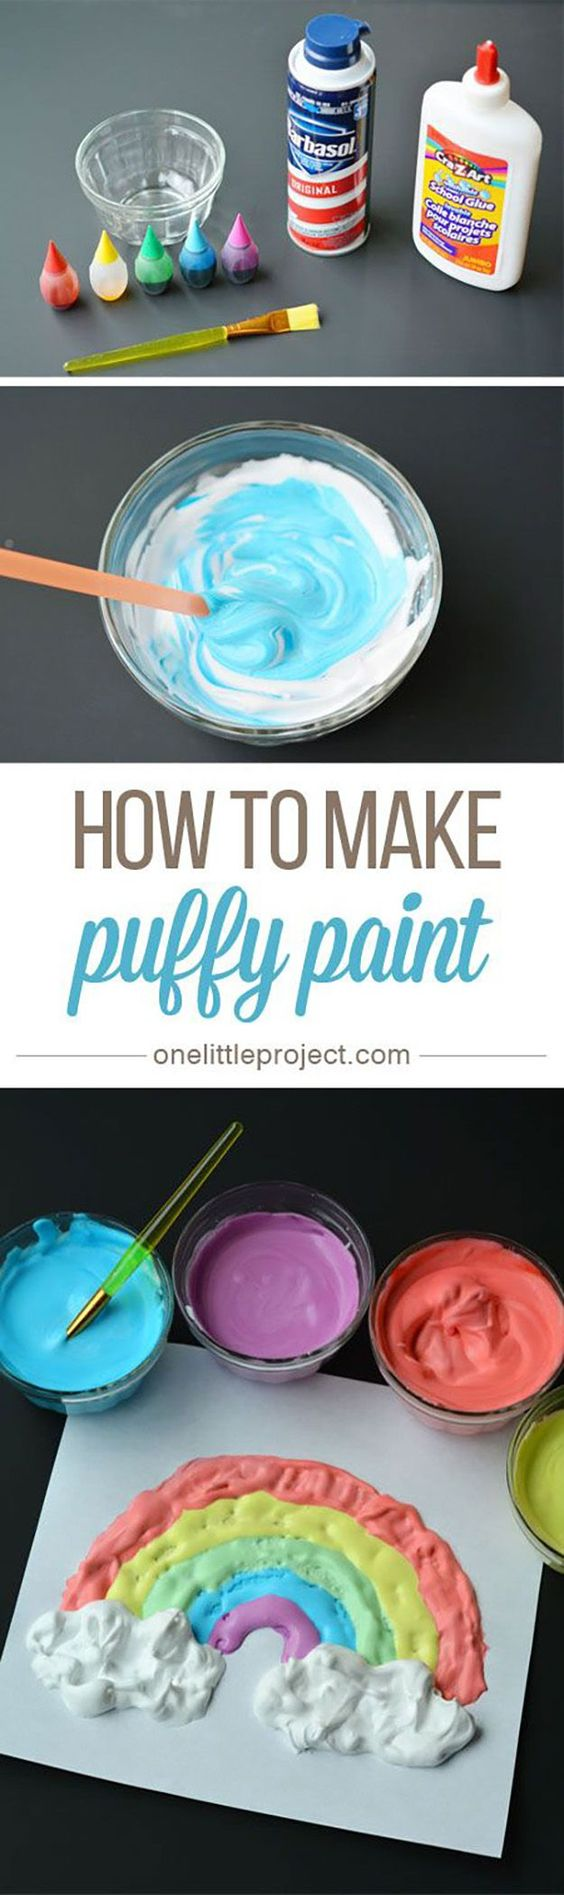 puffy paint